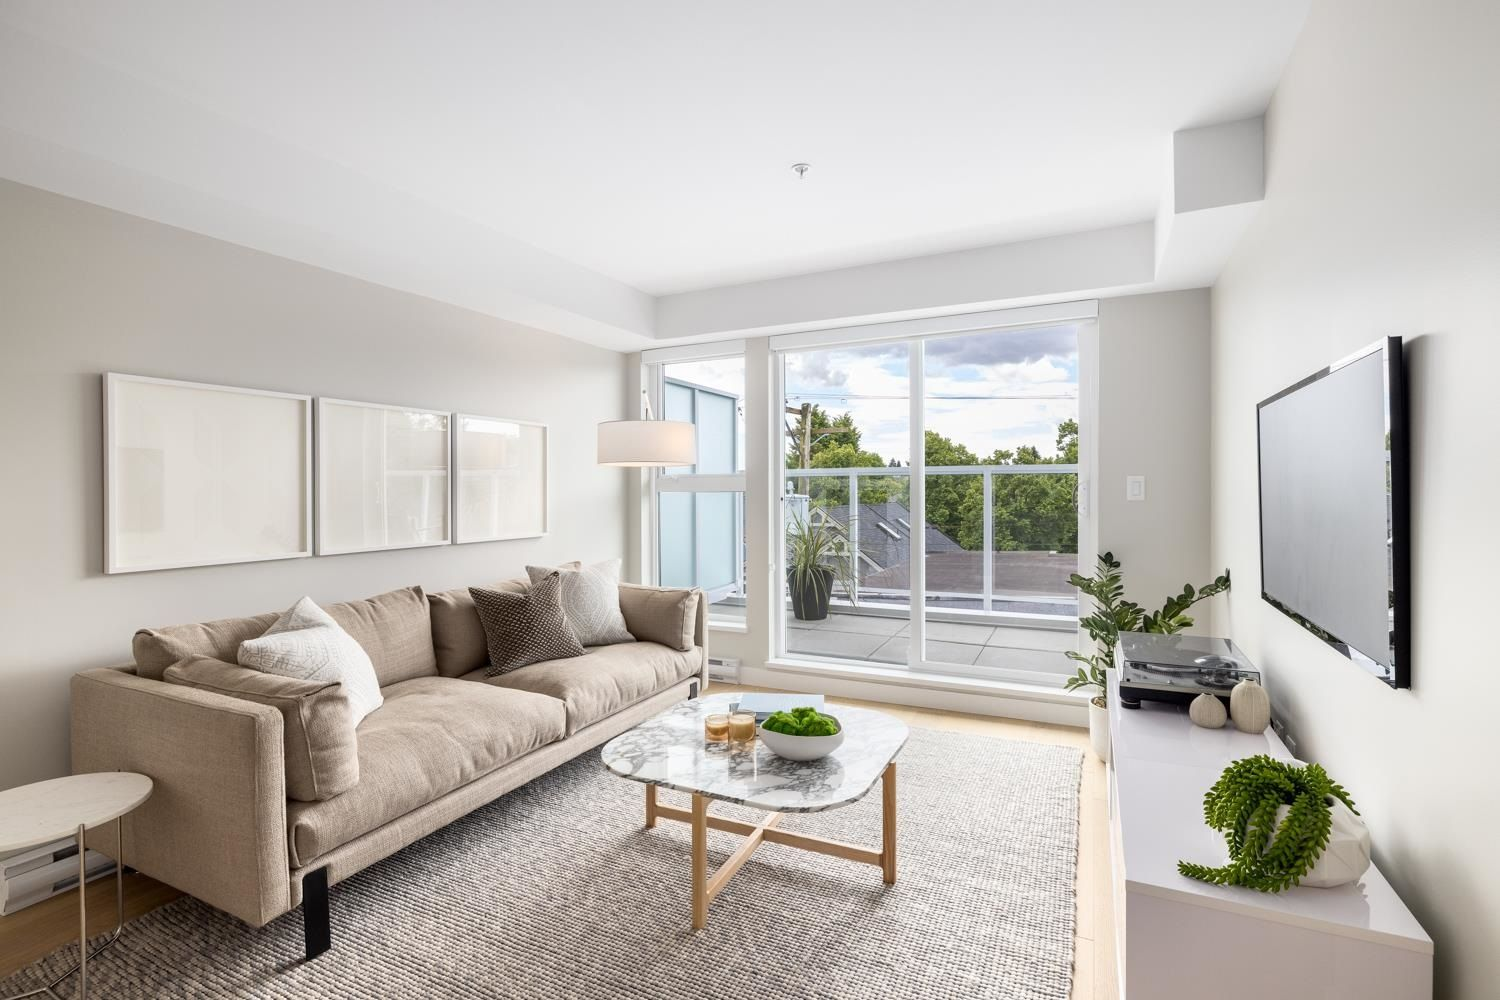 """Main Photo: 408 2508 FRASER Street in Vancouver: Mount Pleasant VE Condo for sale in """"MIDTOWN CENTRAL"""" (Vancouver East)  : MLS®# R2594774"""